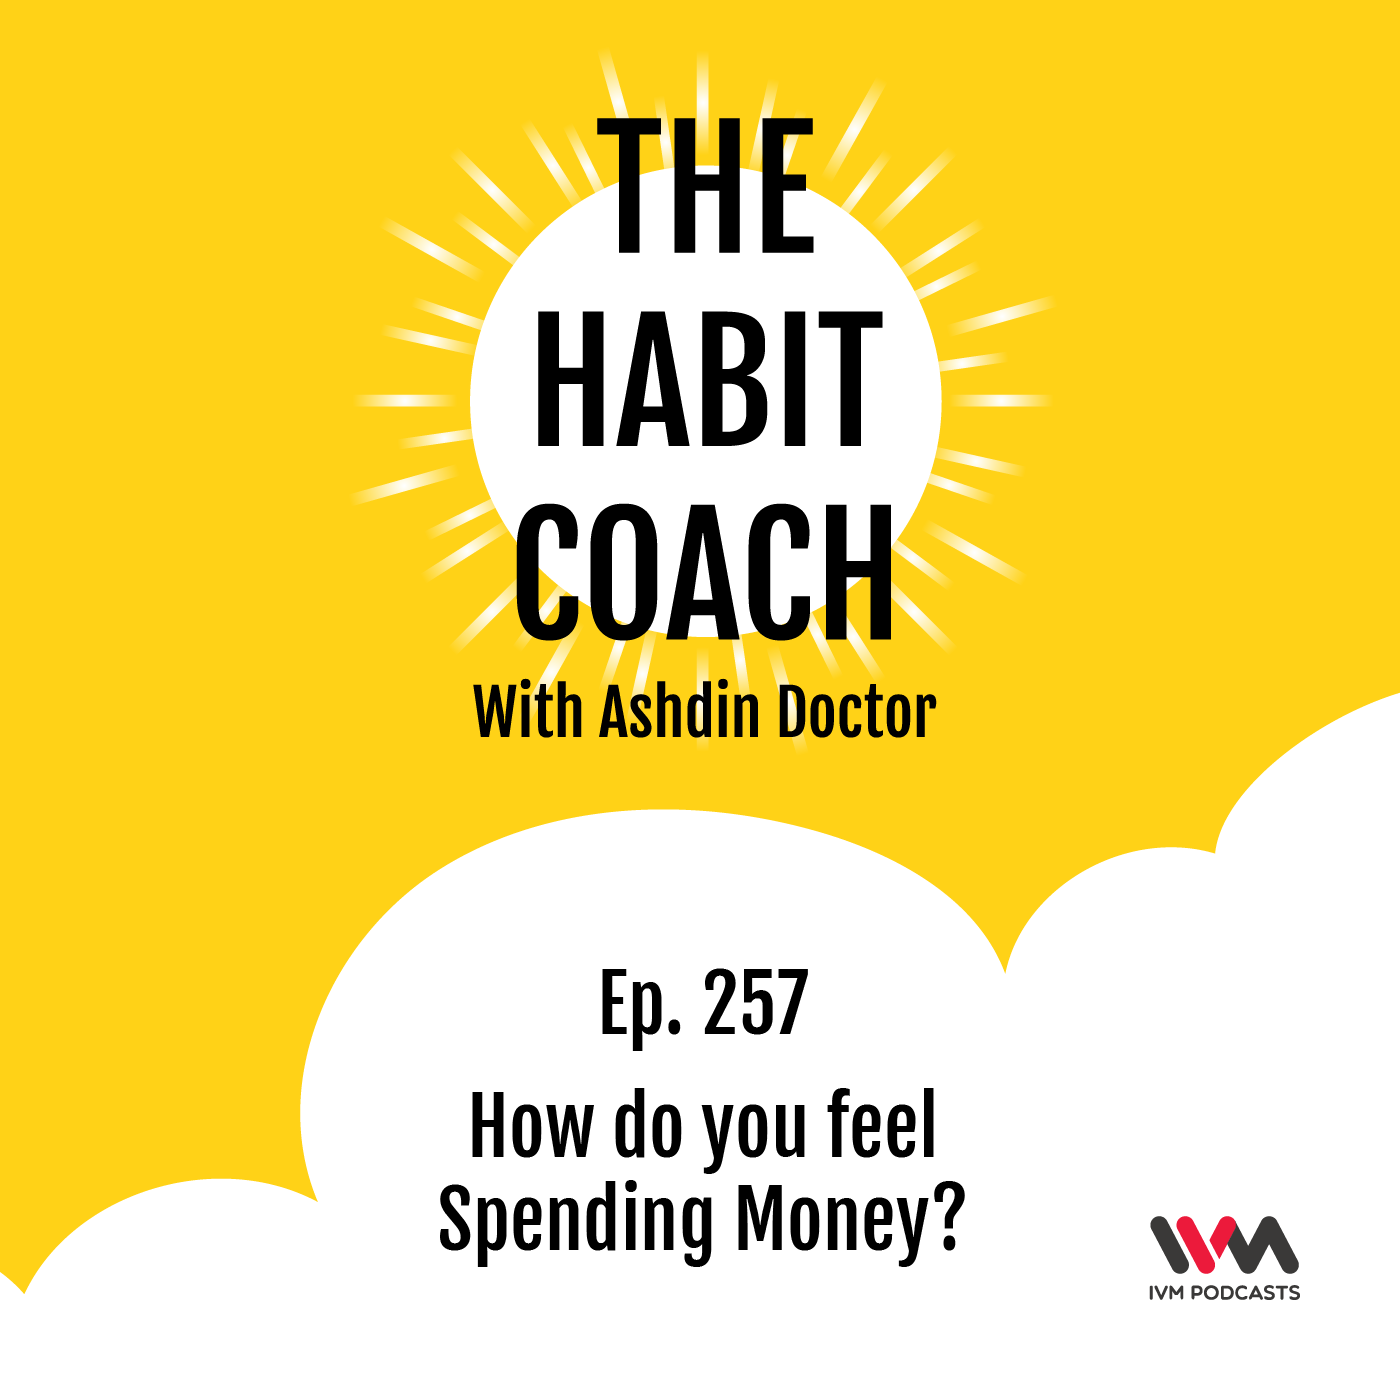 Ep. 257: How Do You Feel Spending Money?